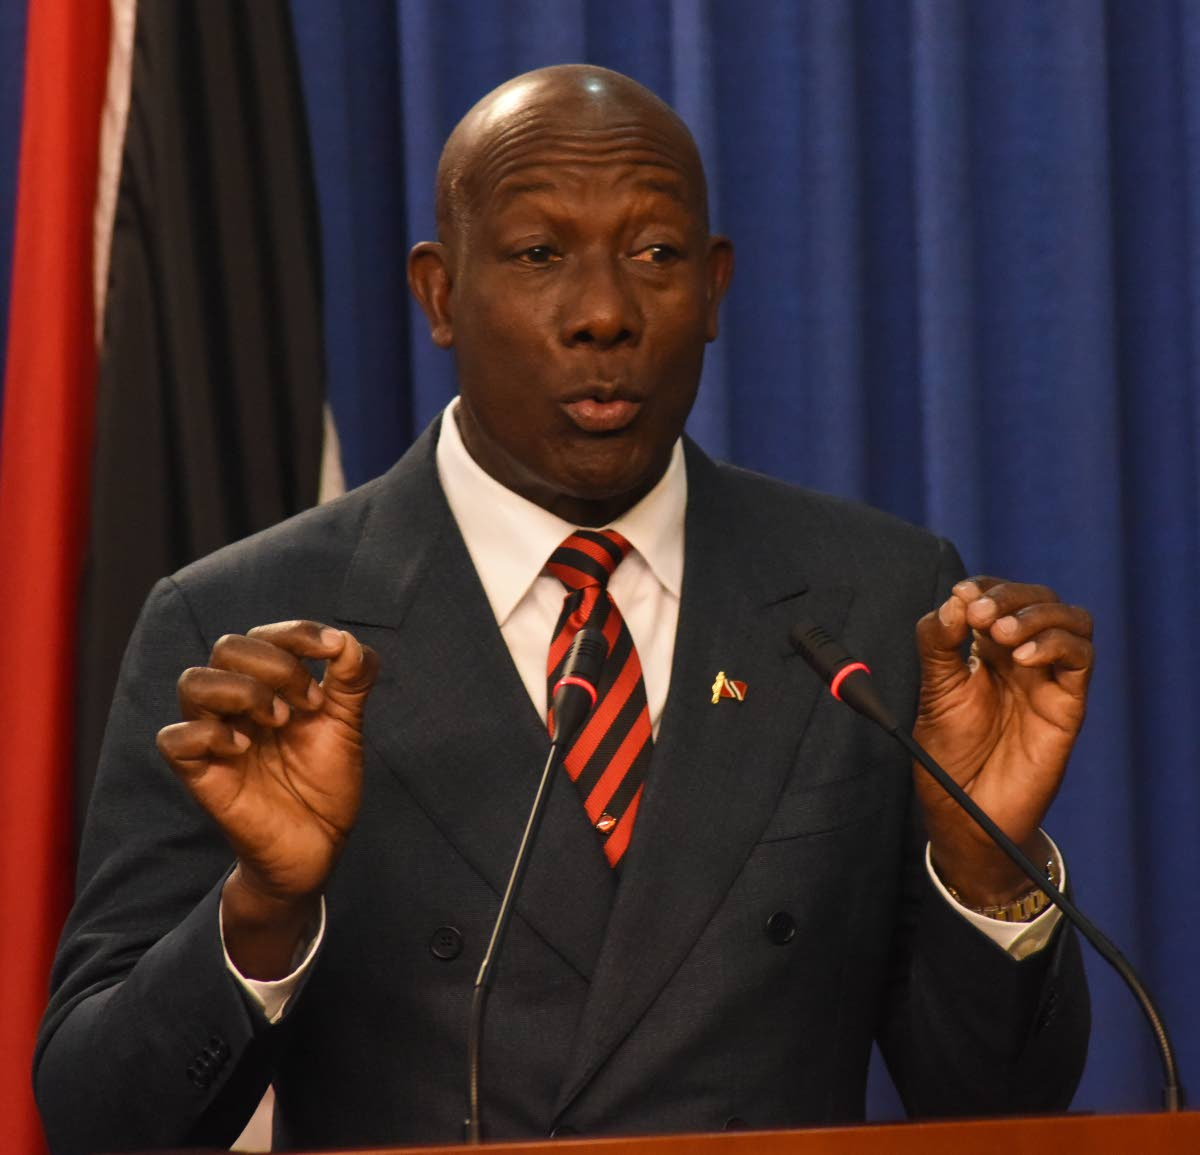 BACK AT WORK: Prime Minister Dr Rowley hosting the weekly post Cabinet press briefing yesterday at the Diplomatic Centre in St Ann's. PHOTO BY KERWIN PIERRE